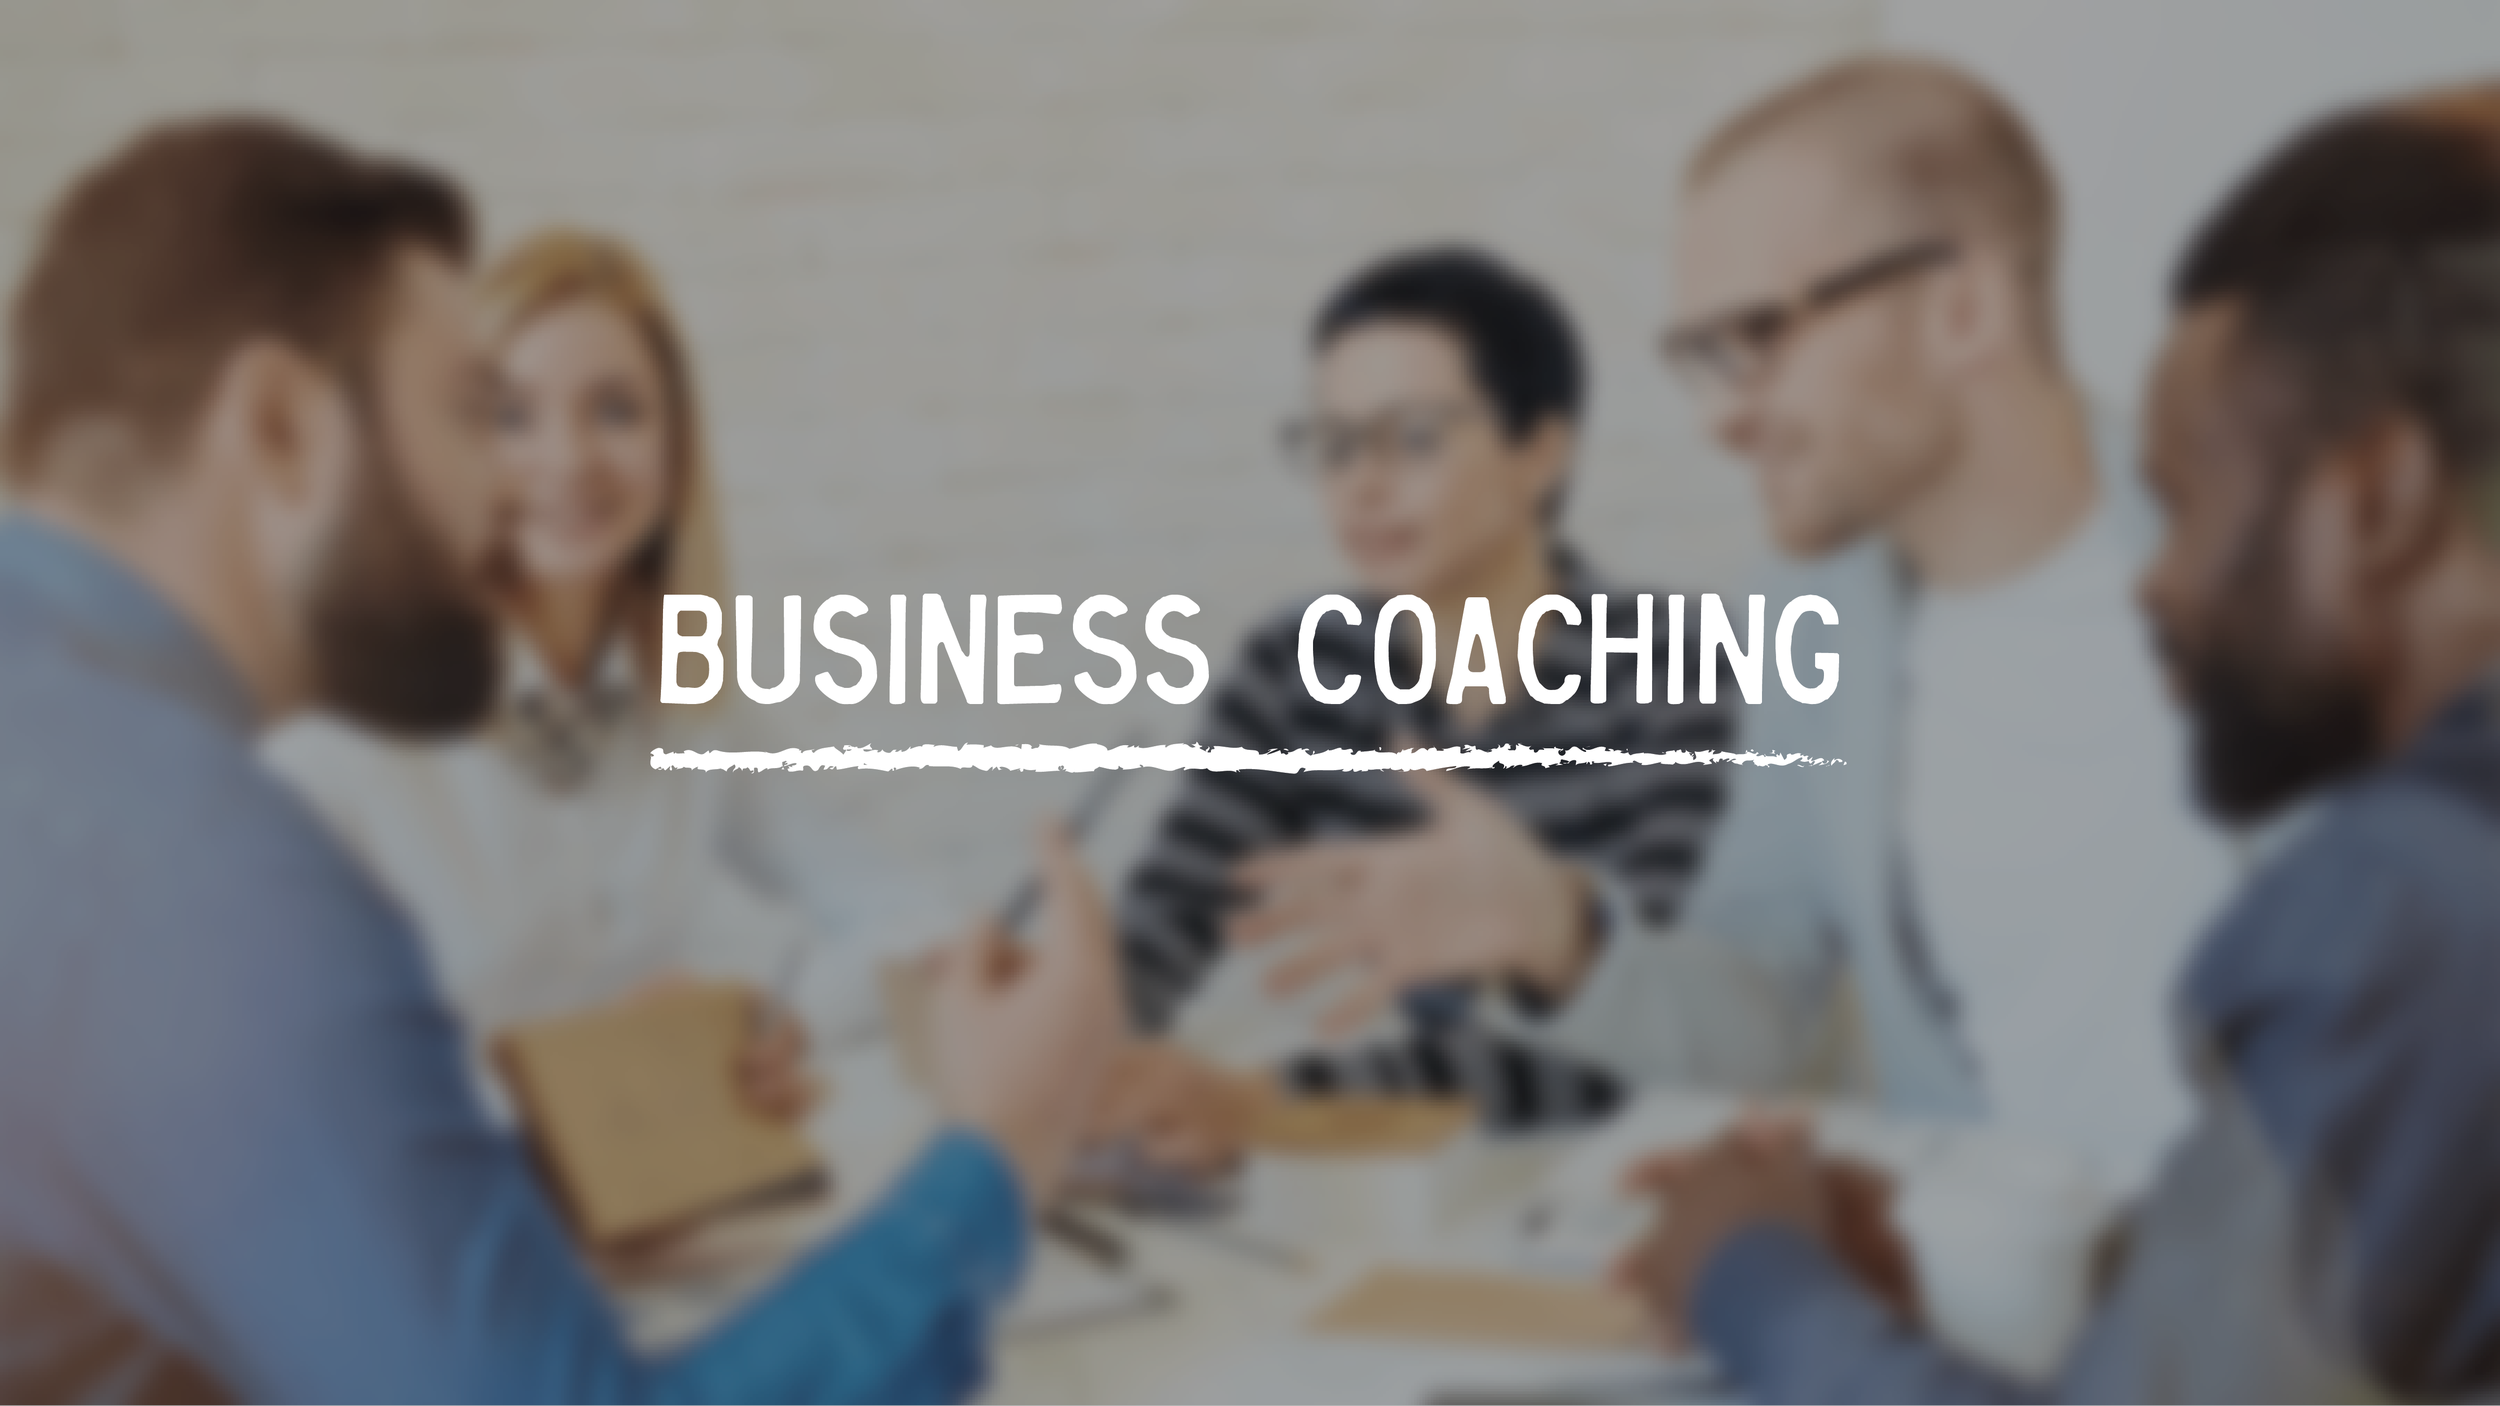 Business Coaching Pic-01.png